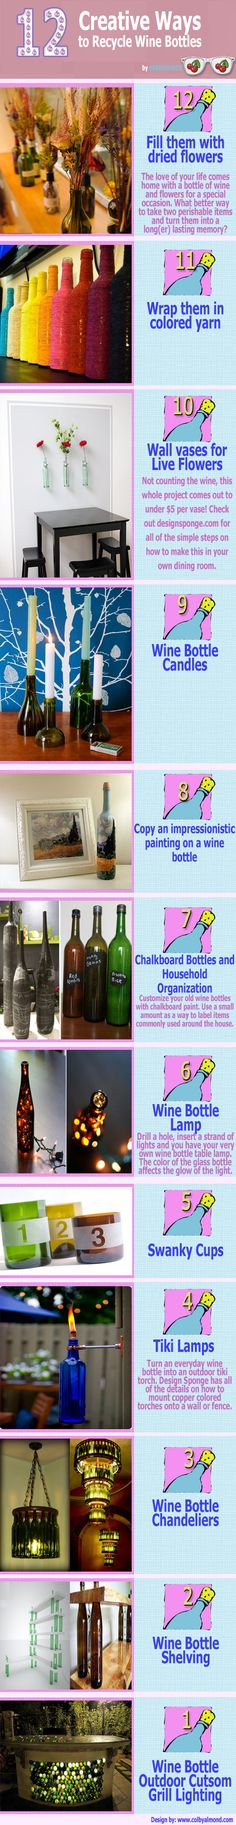 12 creative ways to recycle your wine bottles.